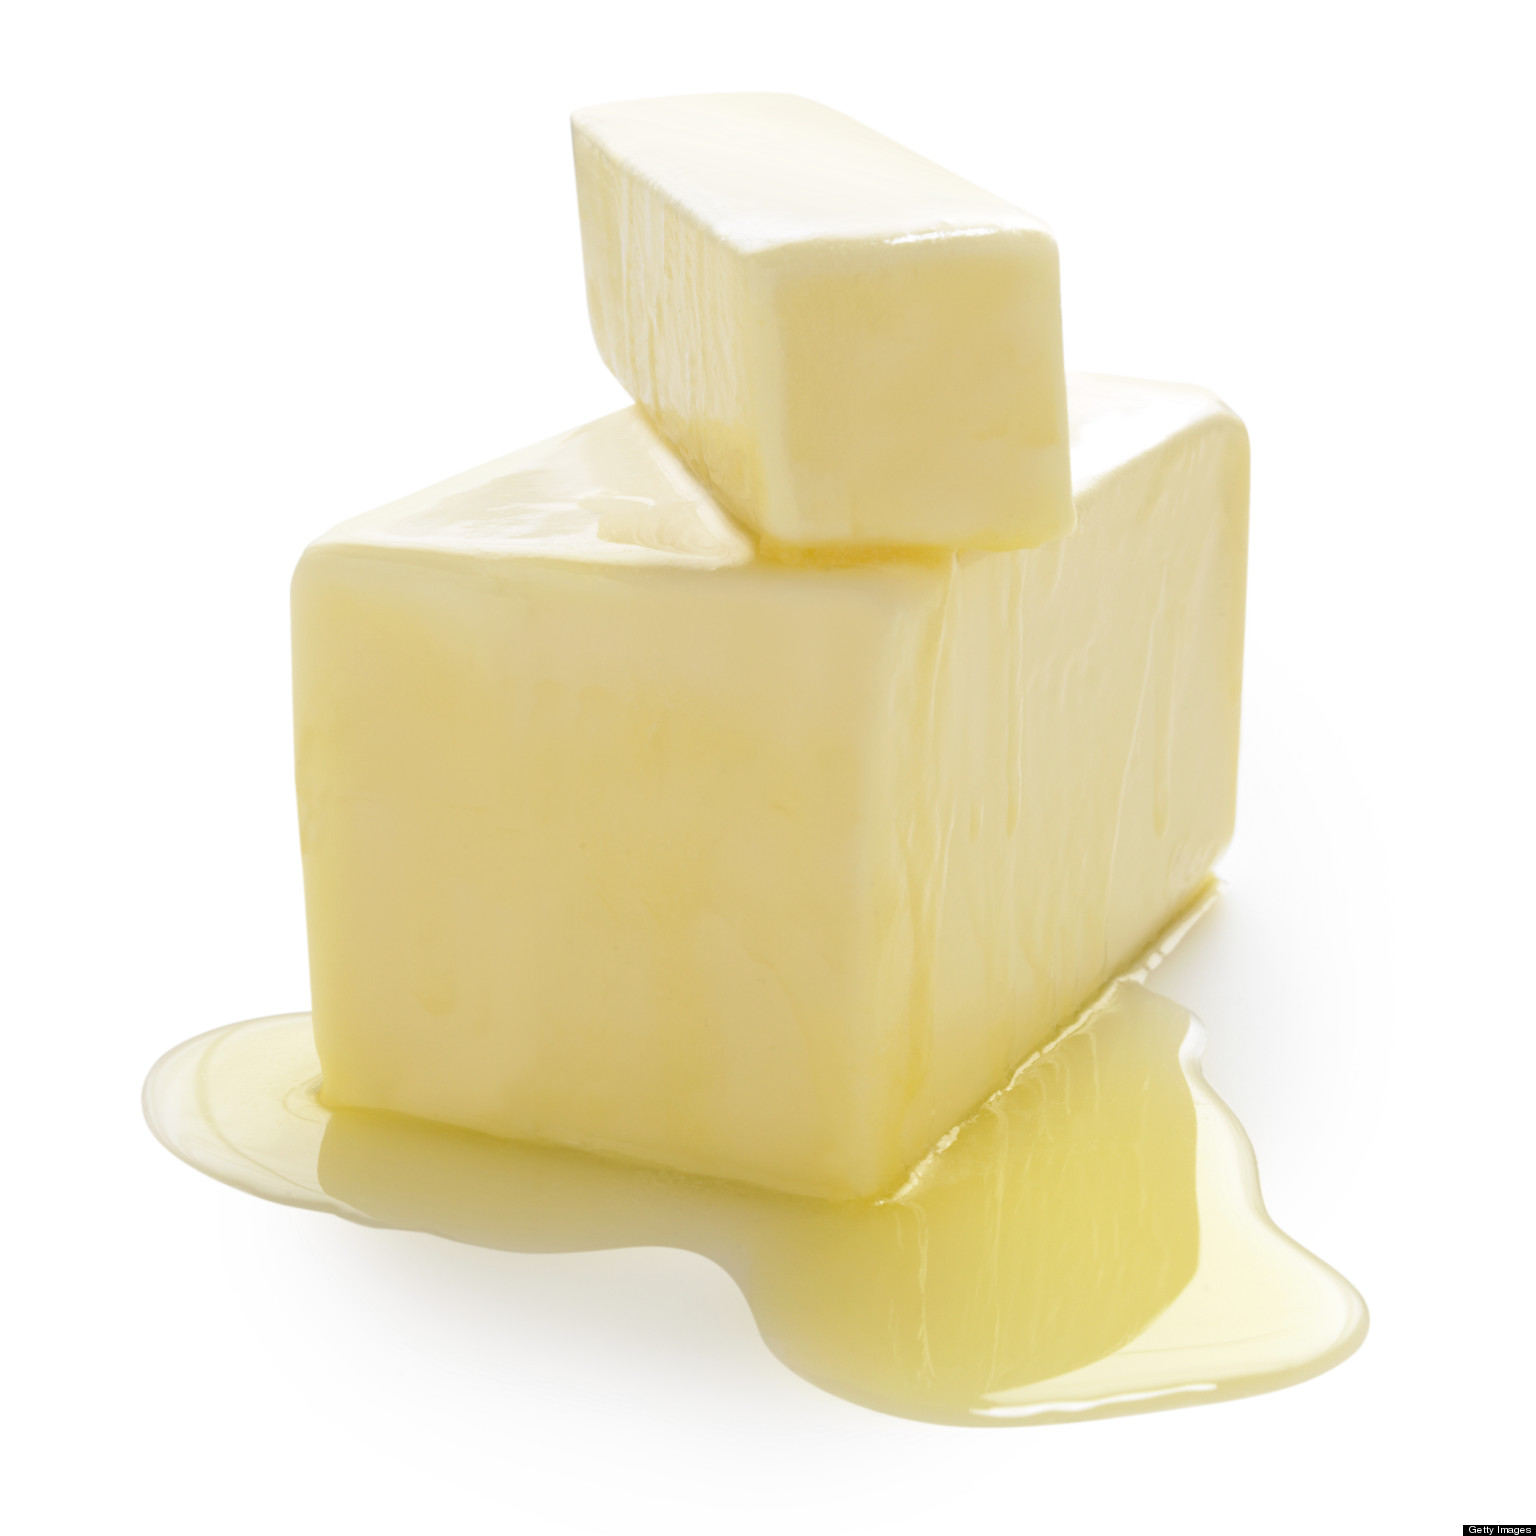 Butter PNG - 5367